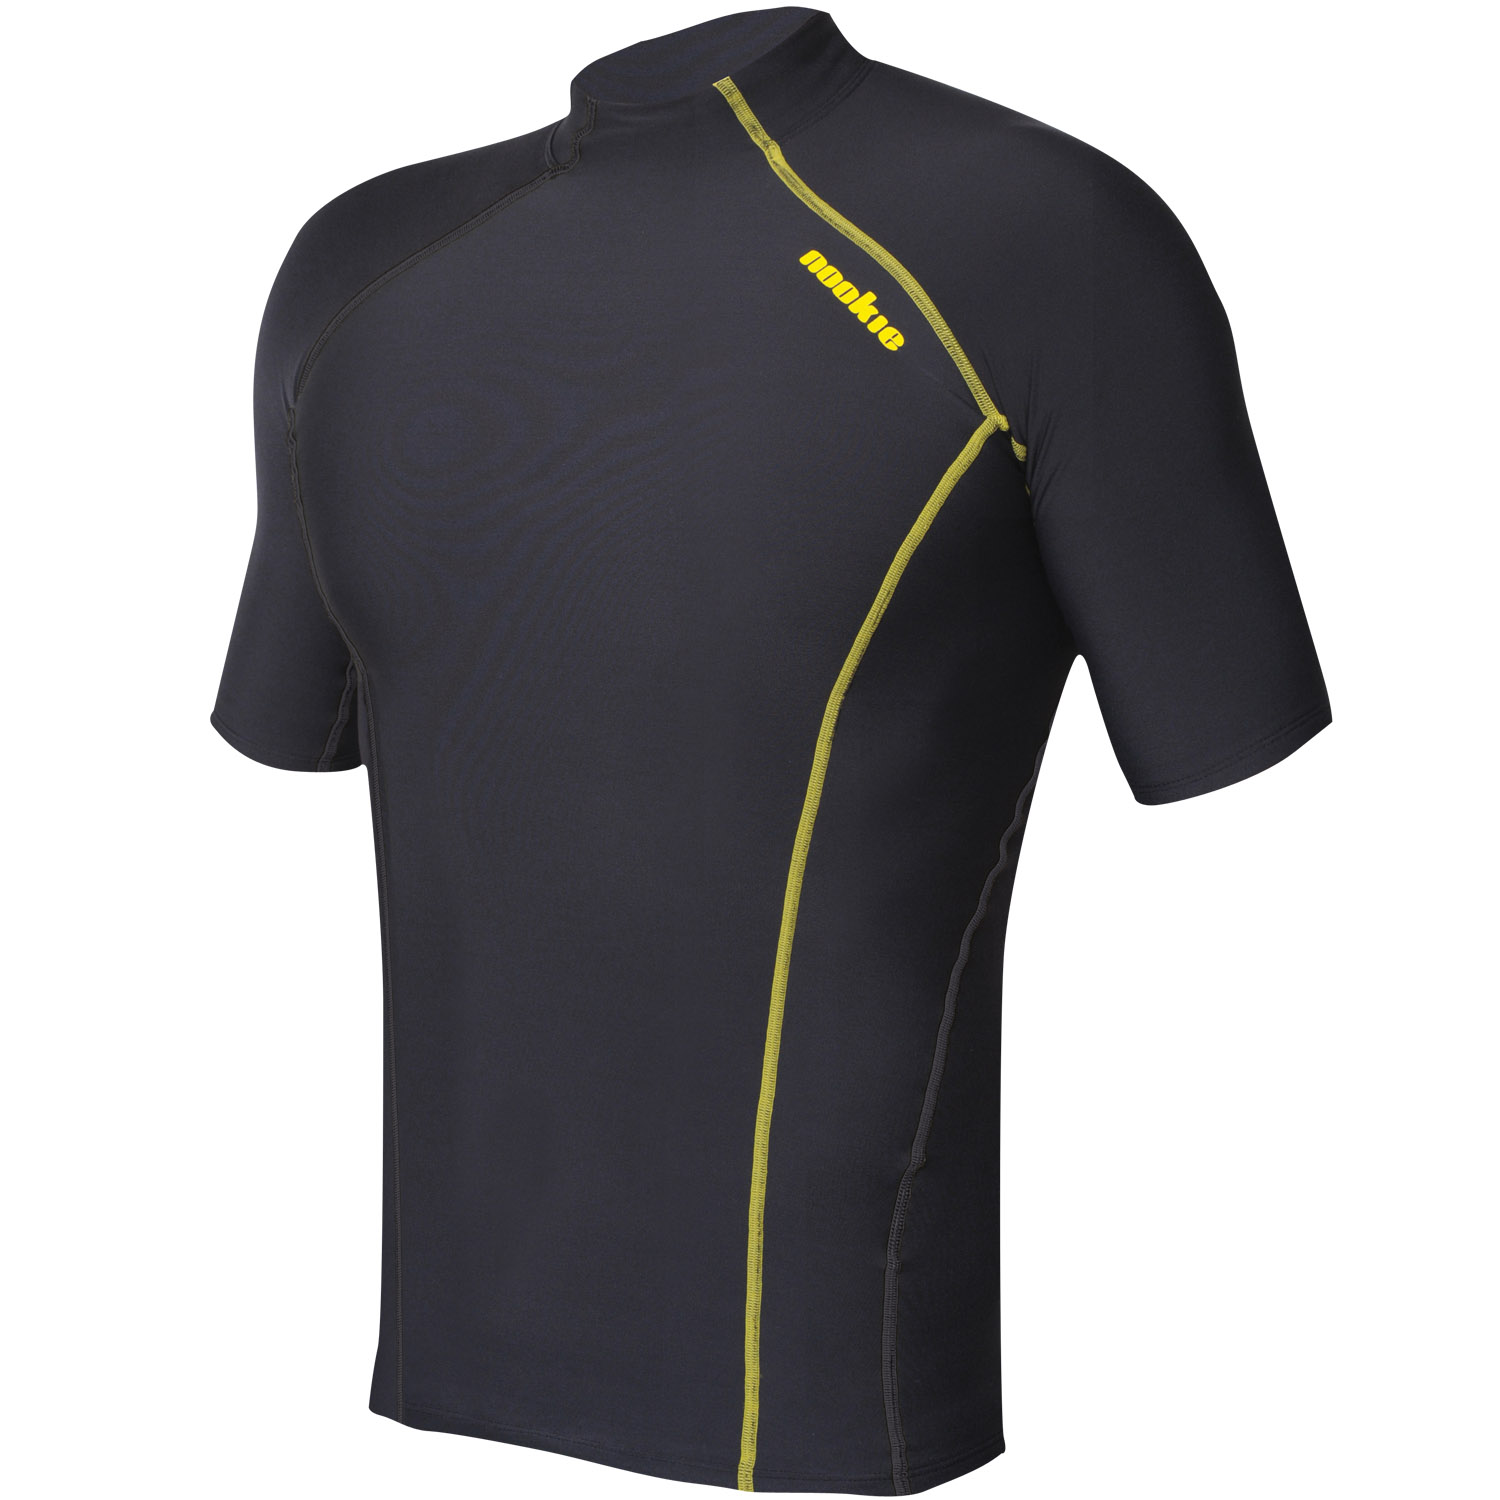 Nookie Softcore Thermal Base Layer Short Sleeve